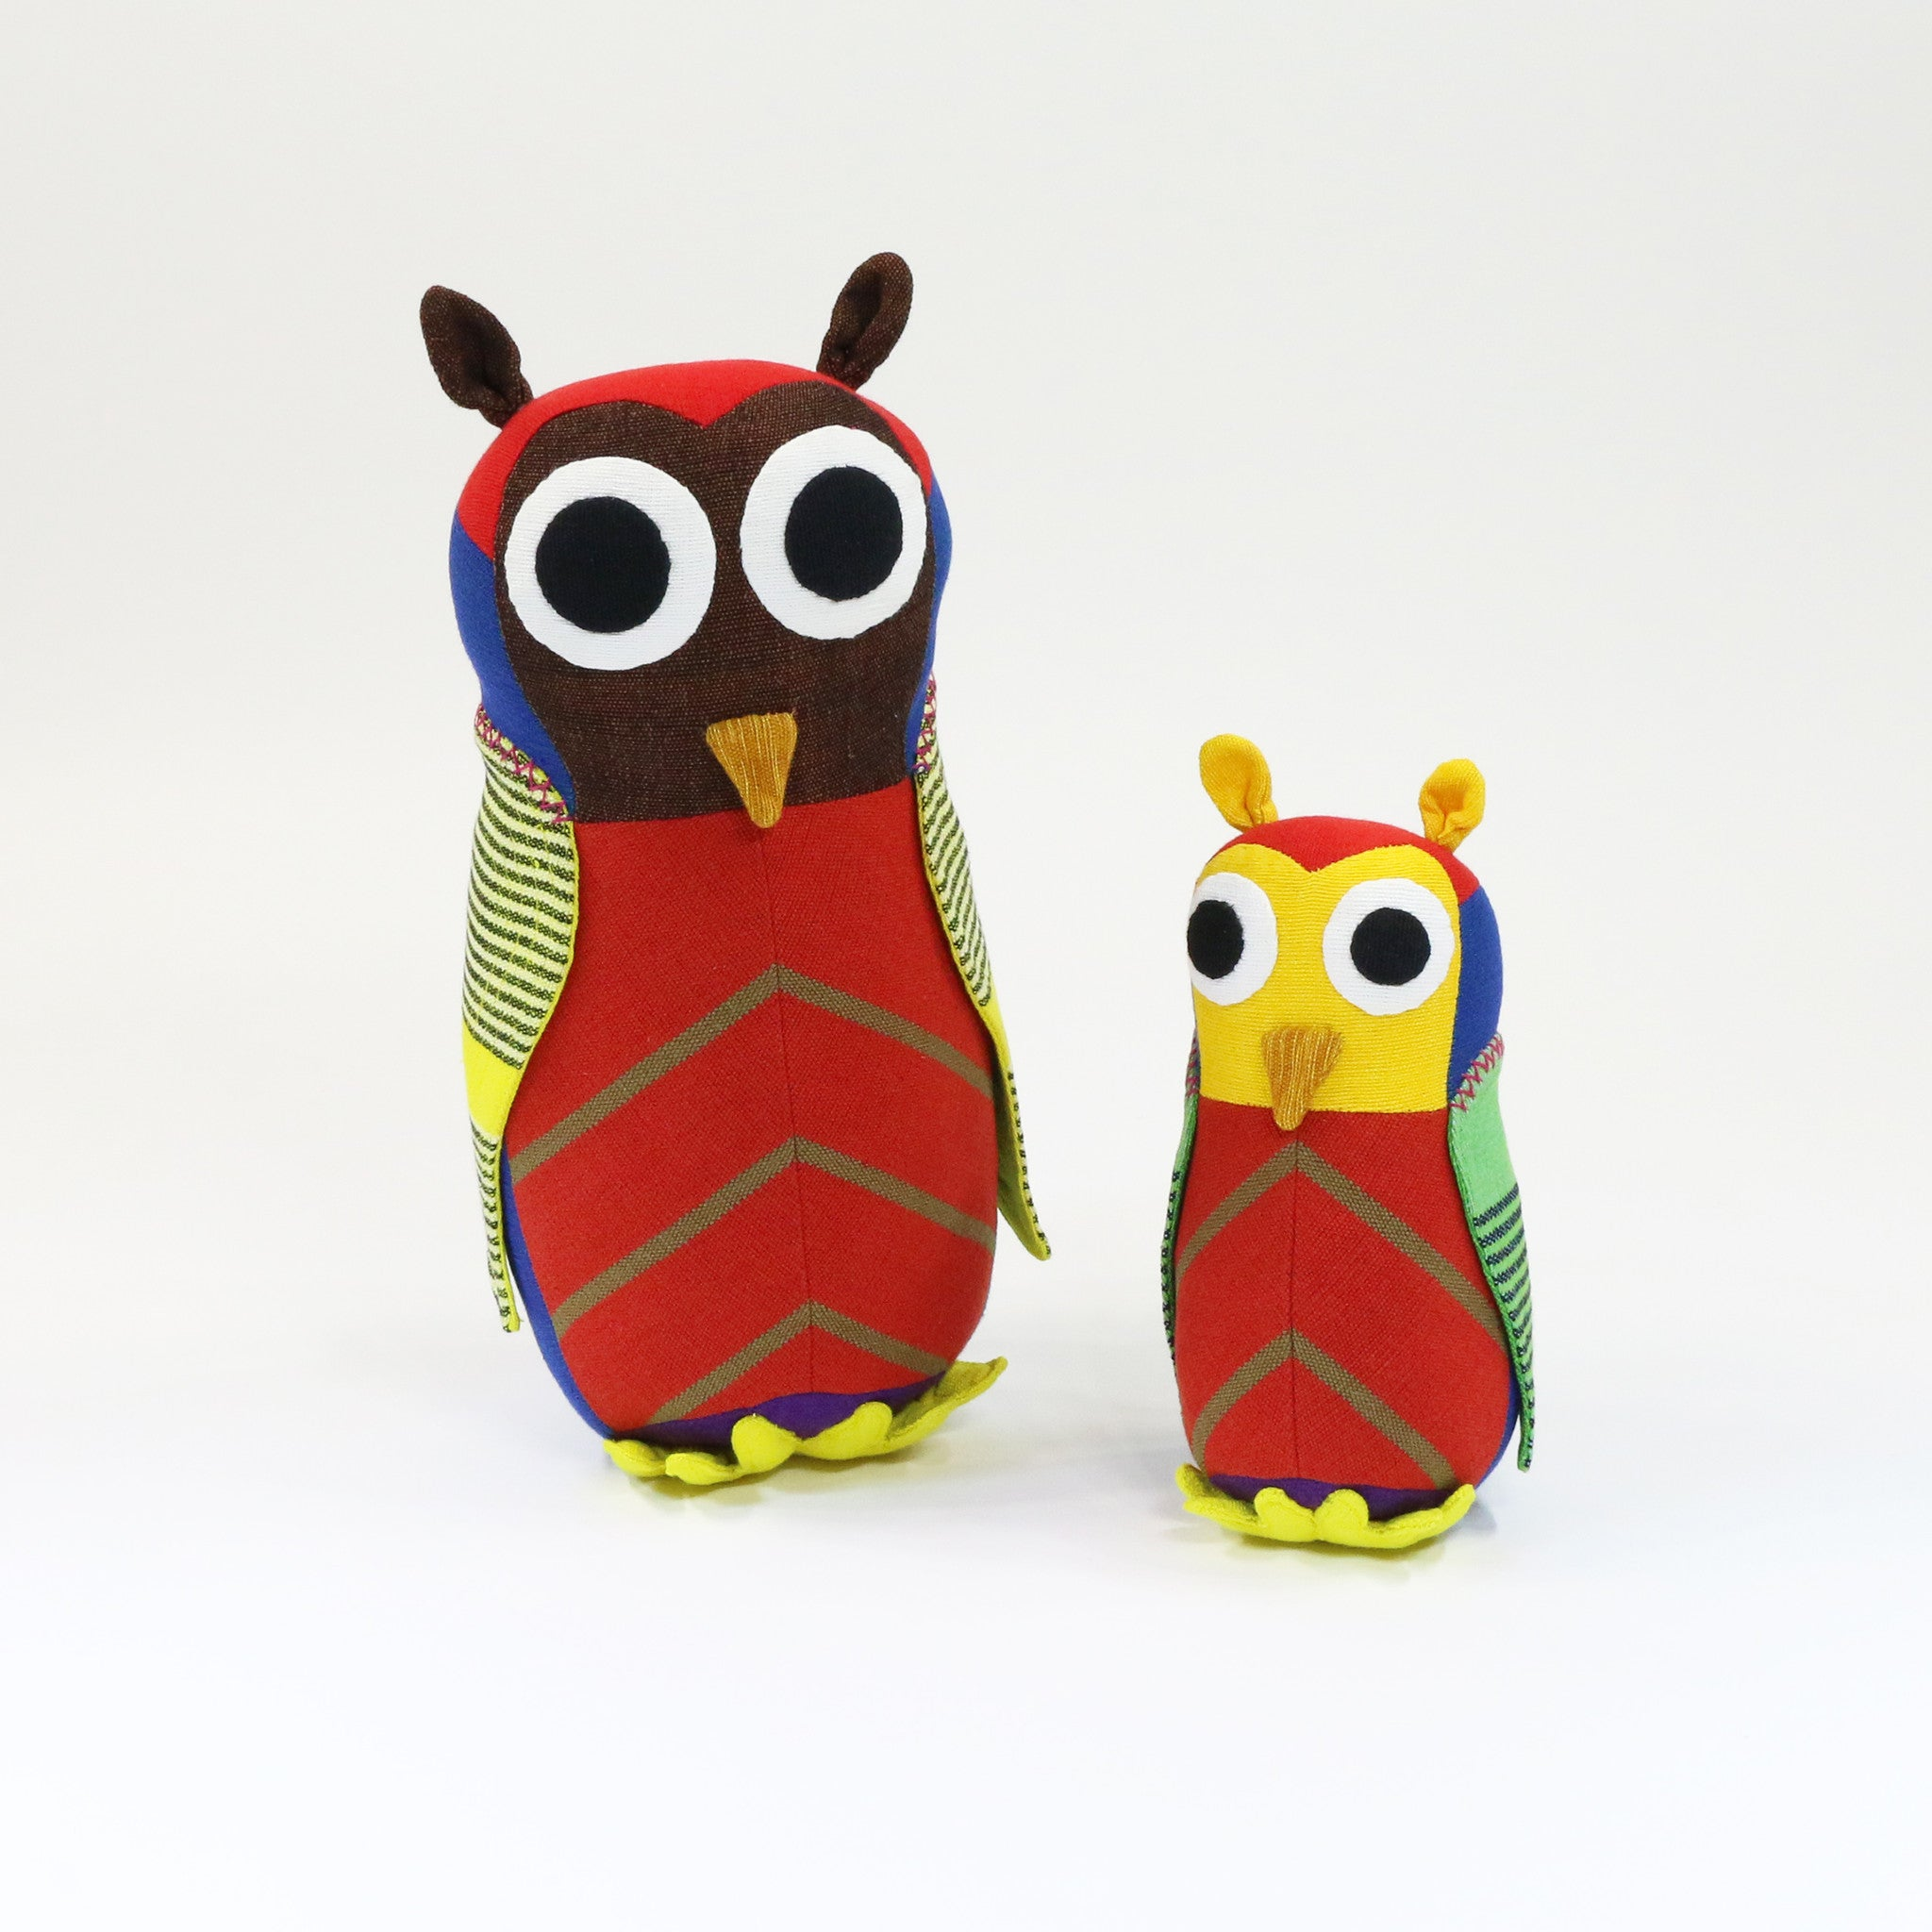 Owl Toy - Harold, the Owl (small & large sizes)